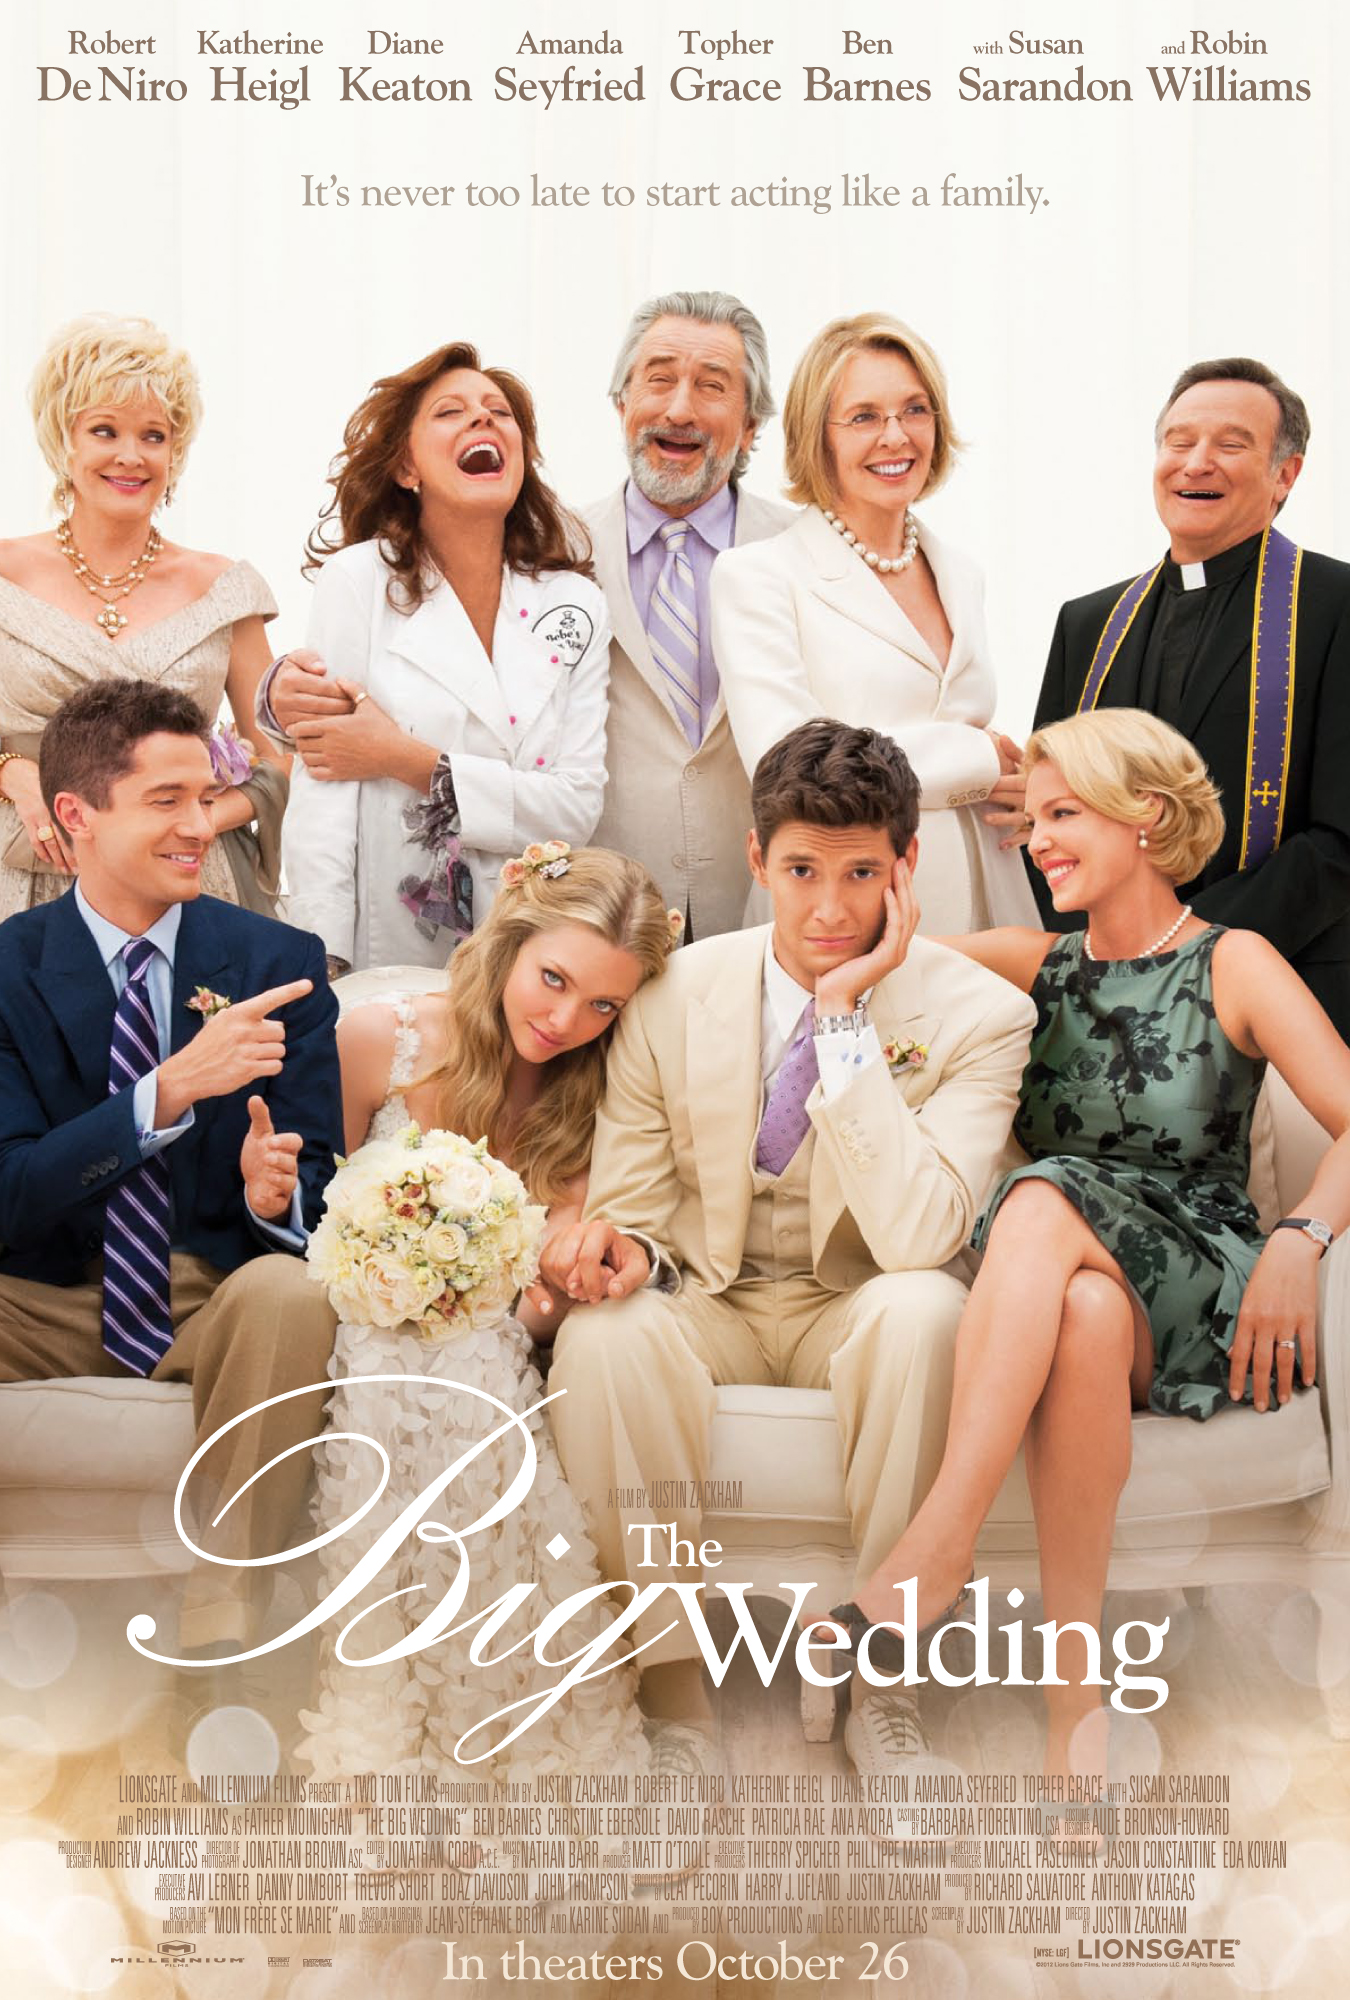 Wedding movies are always hilarious #BigWedding